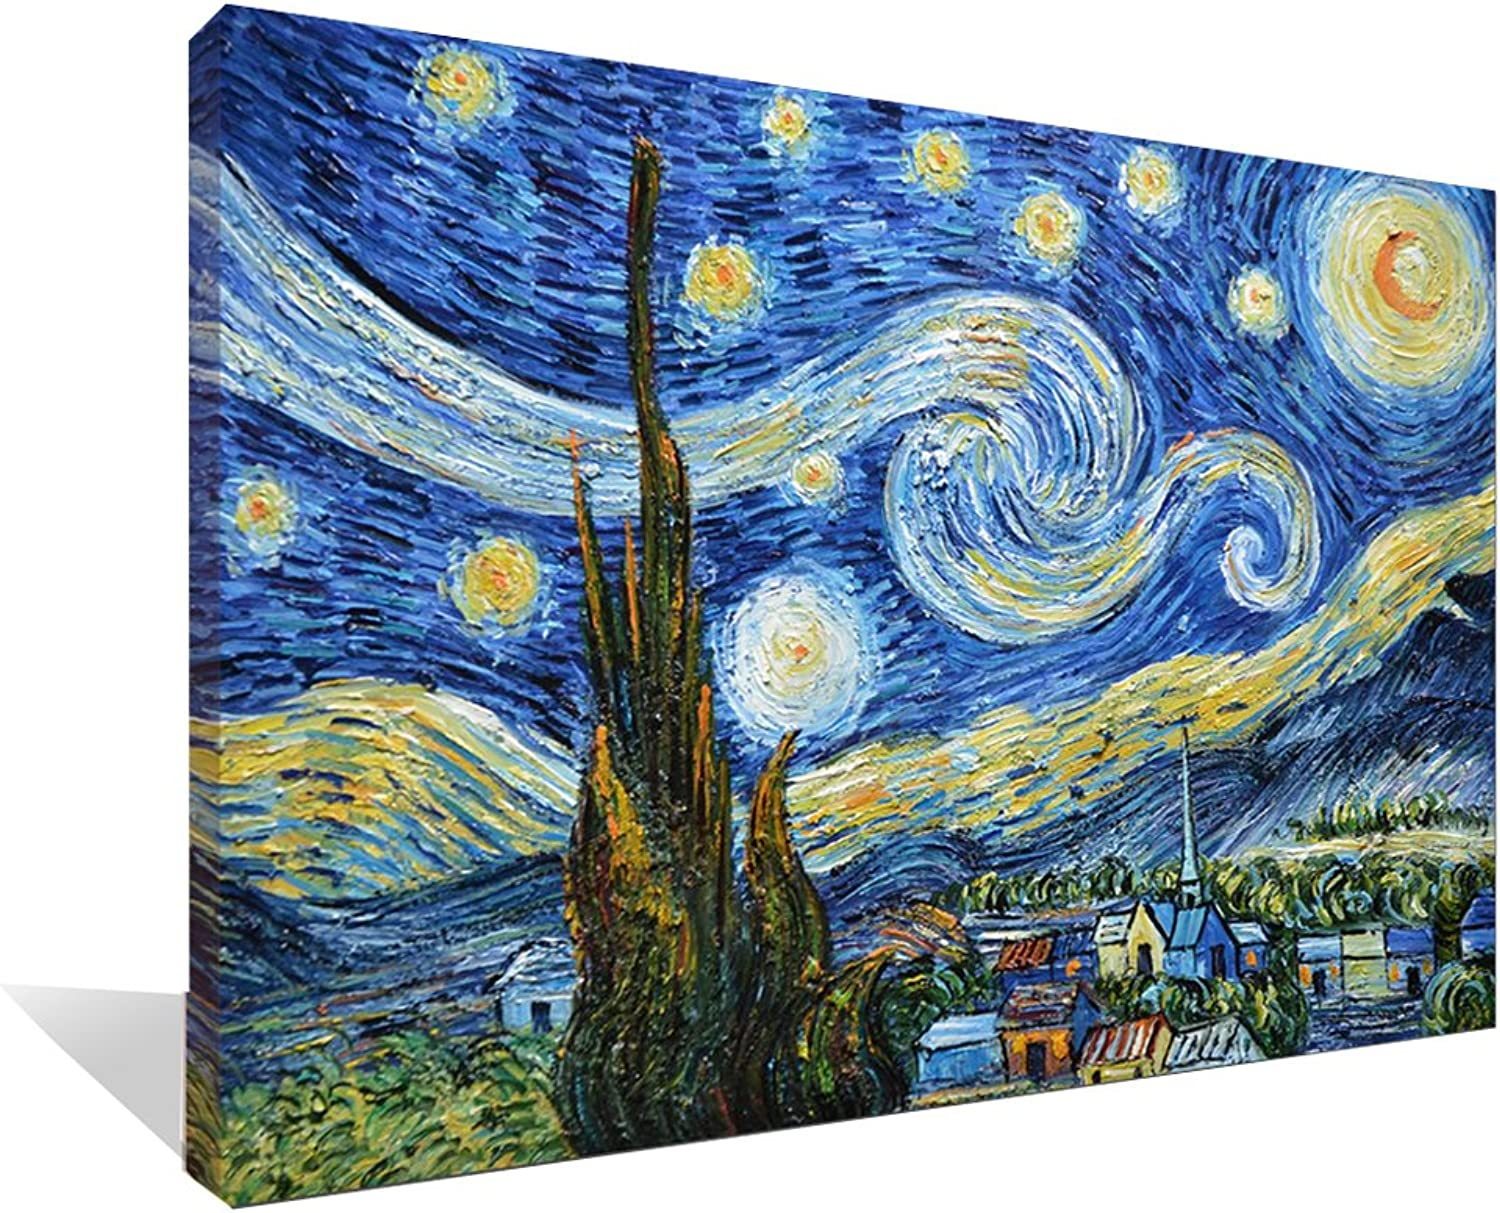 Asdam Art 100% Hand Painted 3D bluee Starry Night by Vincent Van Gogh Work Abstract Oil Paintings Framed Modern Home Wall Art for Living Room Bedroom Dinning Room (24x36inch)